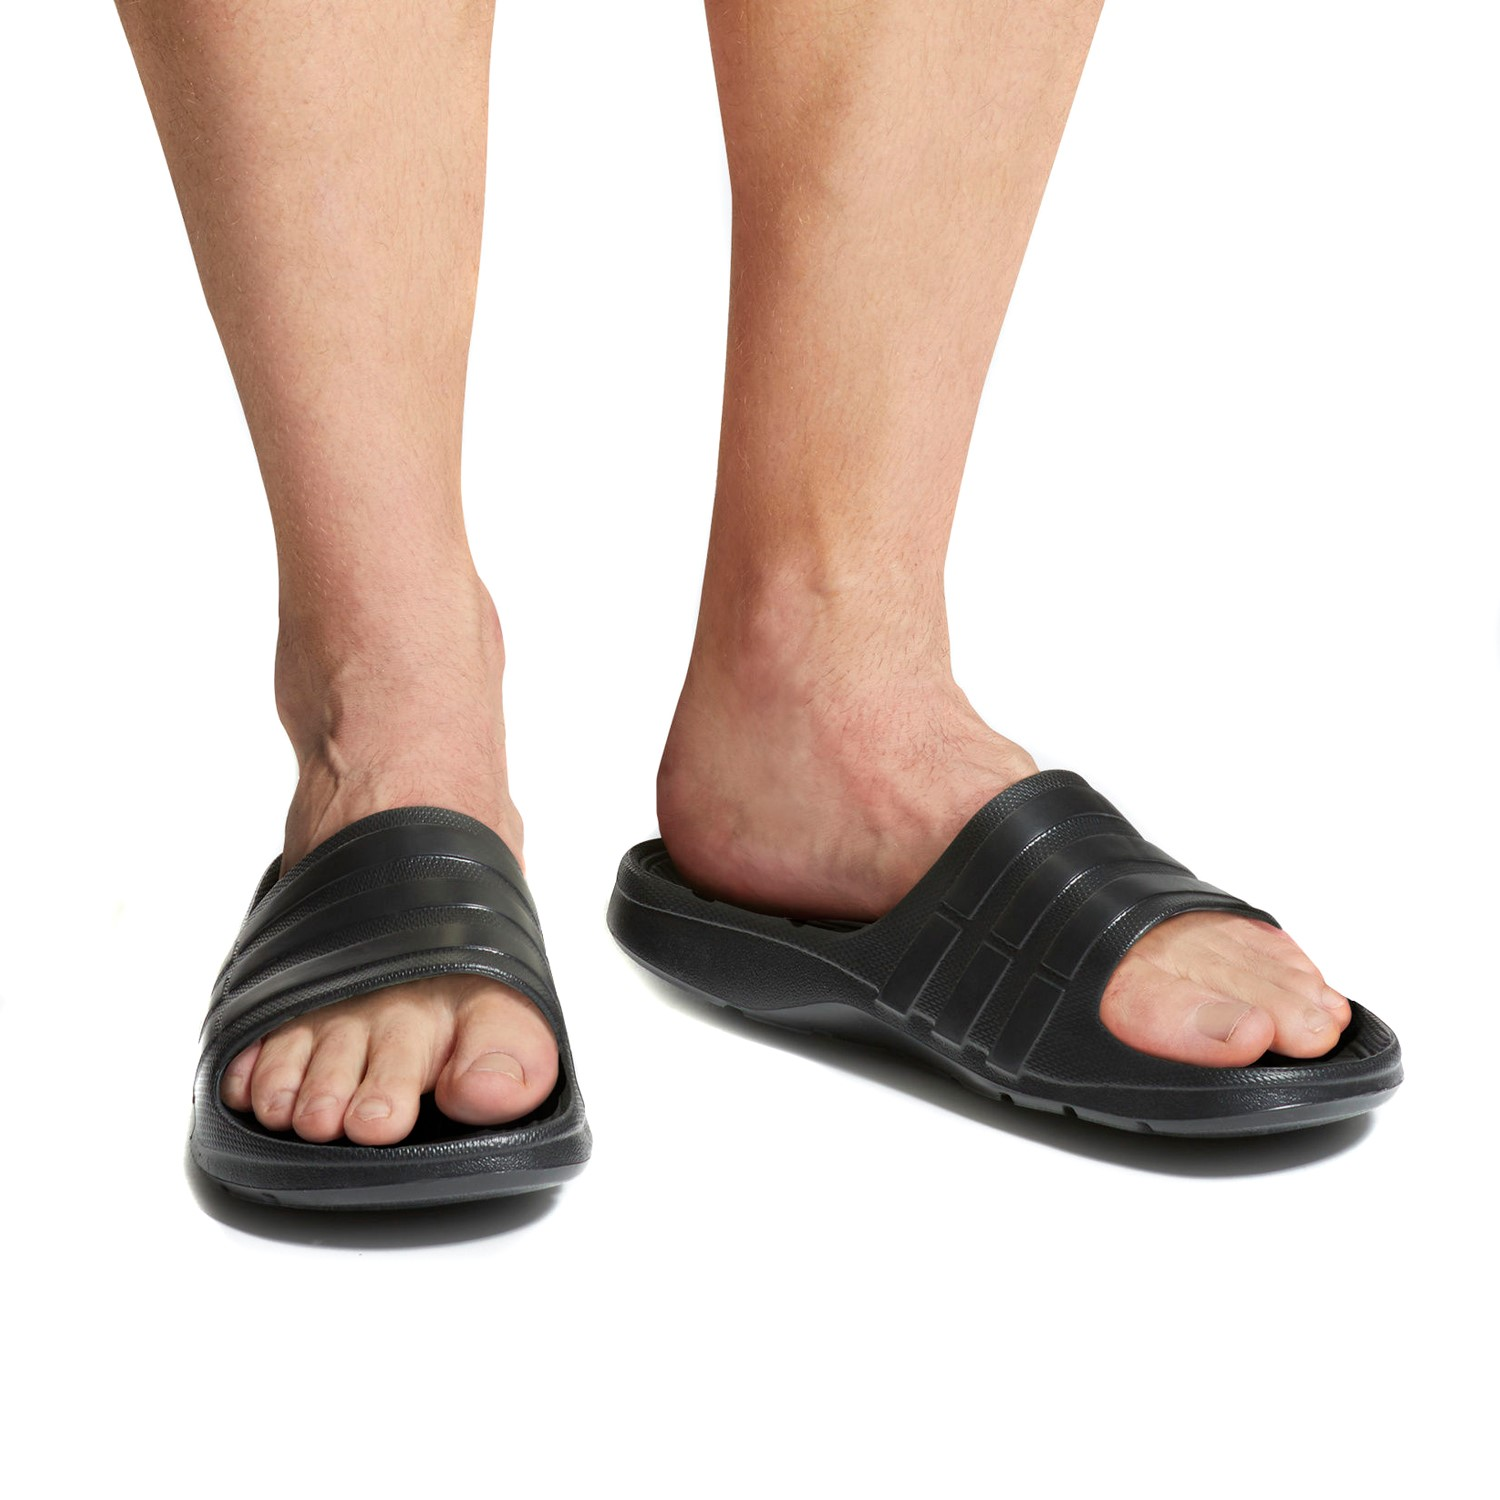 419b5bd133d30 Adidas Duramo Slides - Mens Casual Slides - Triple Core Black ...